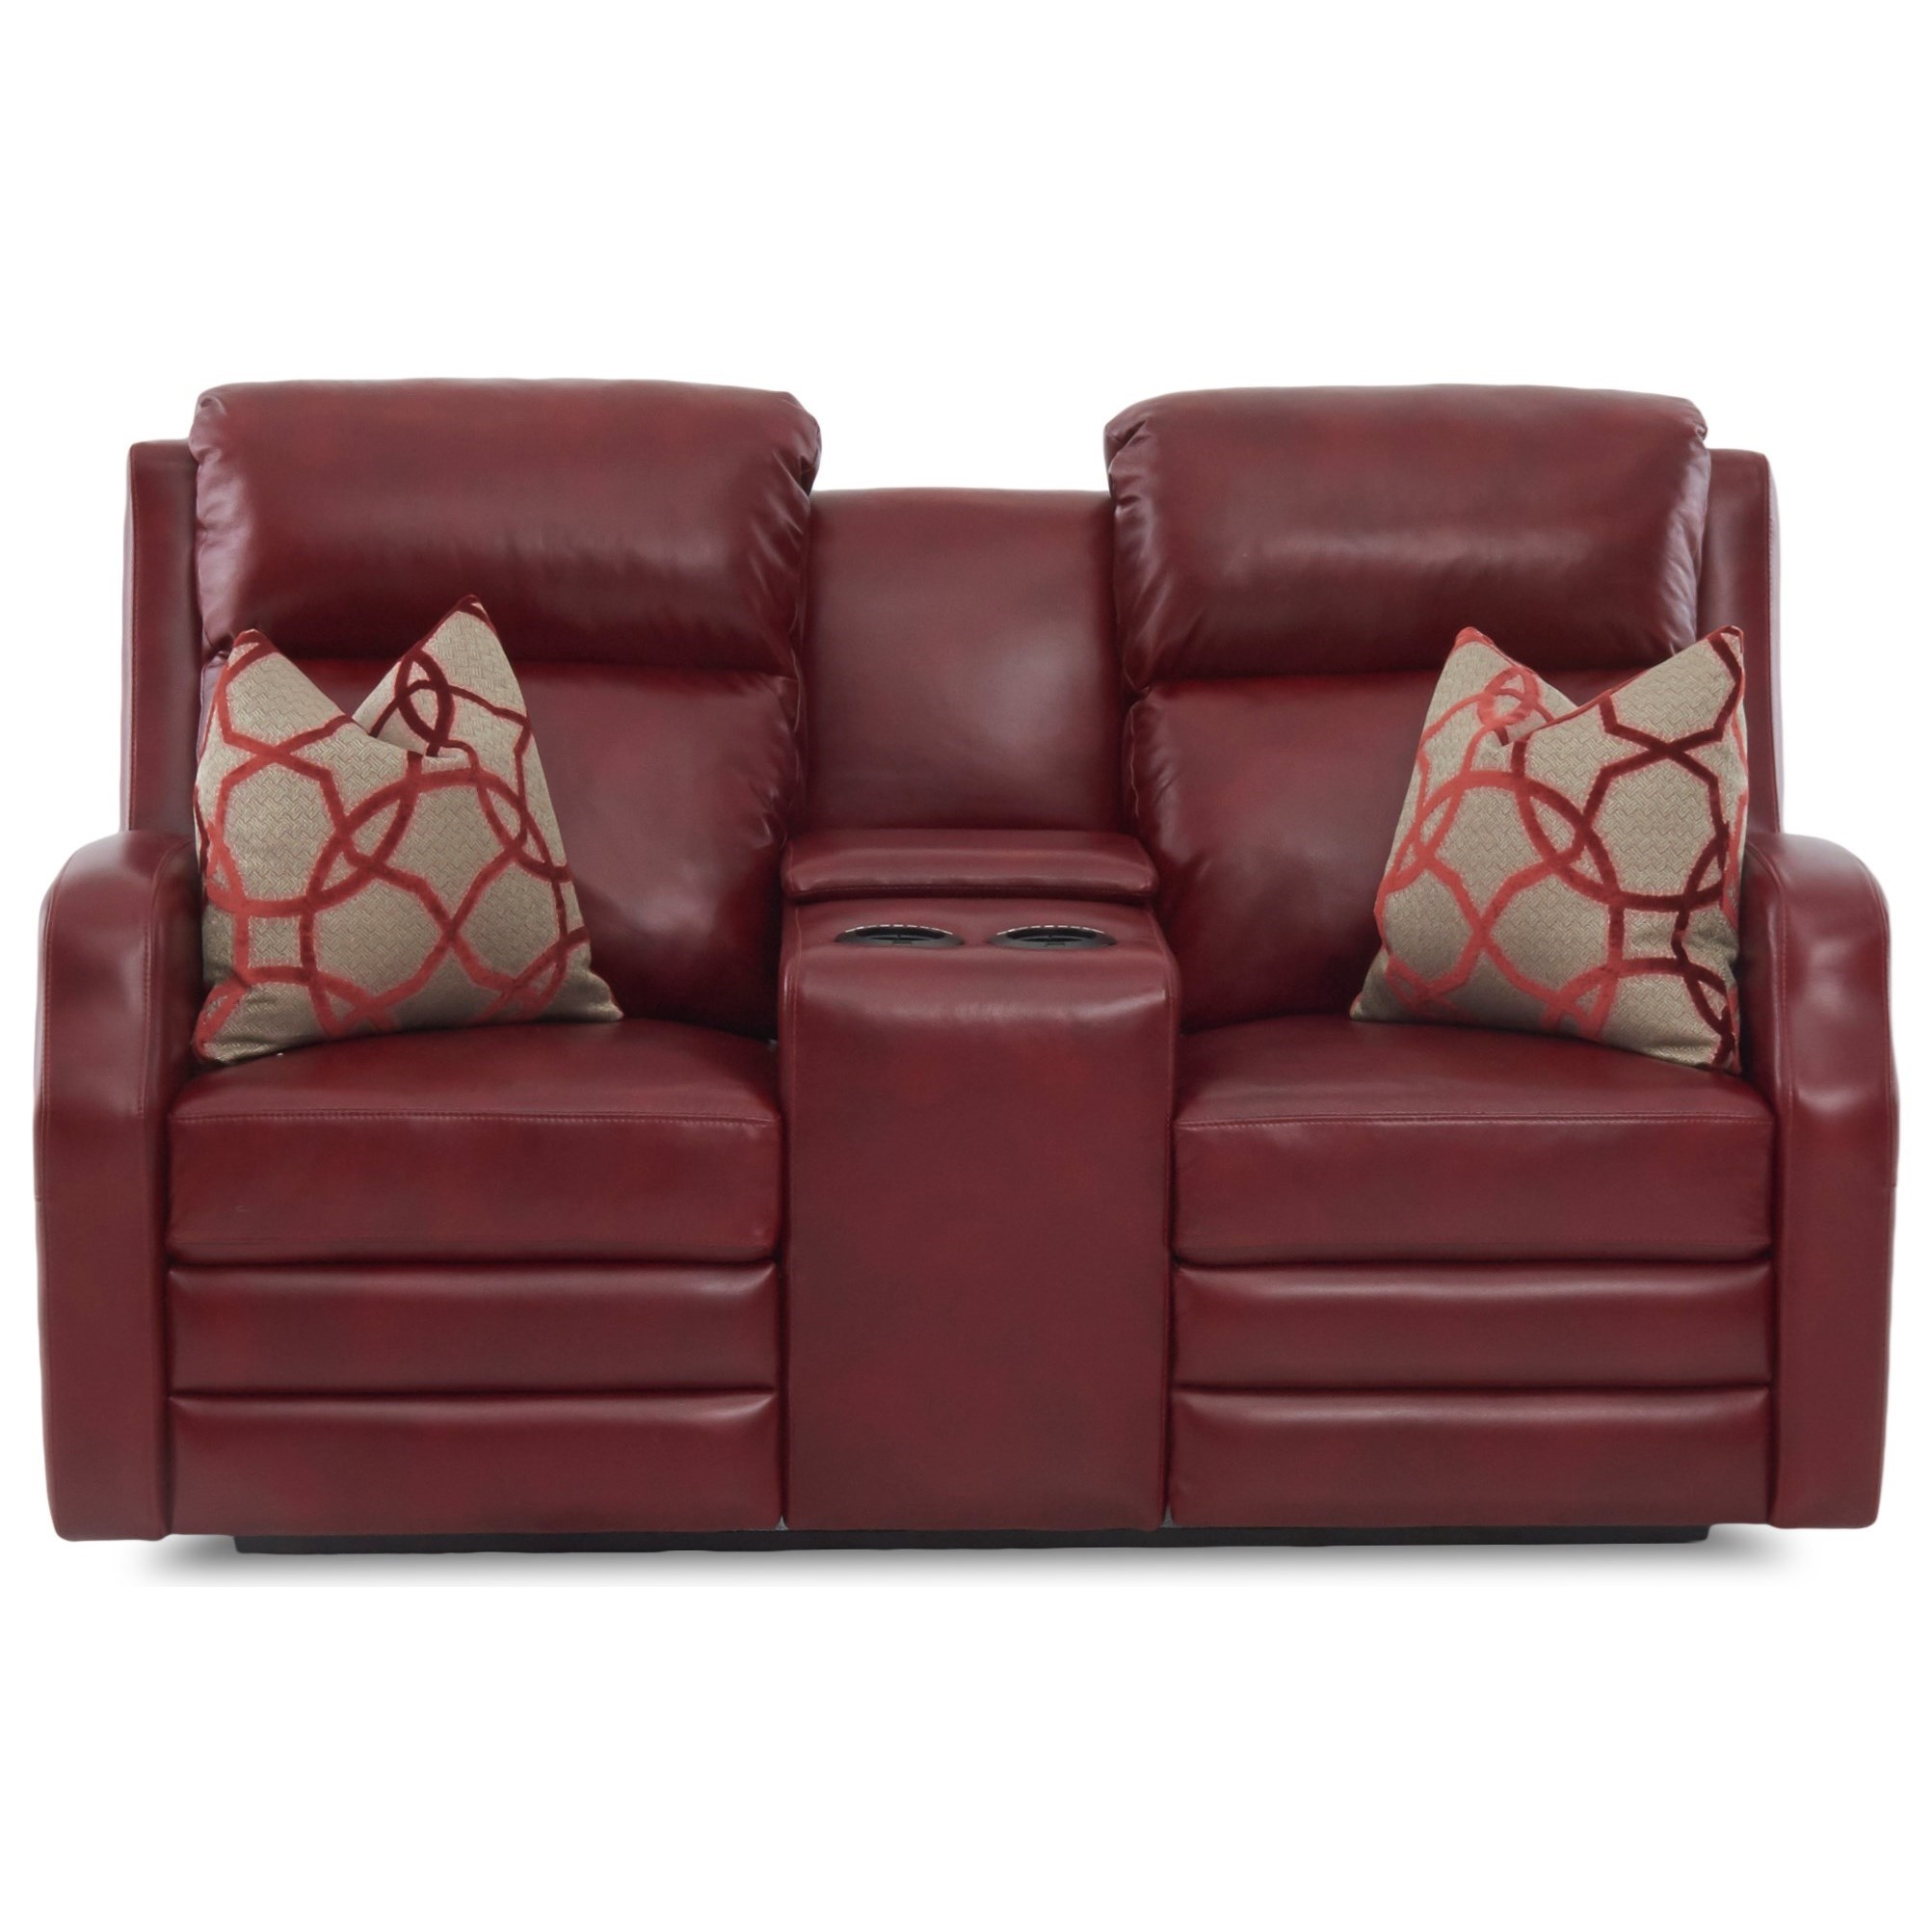 Console Reclining Loveseat w/ Pillows